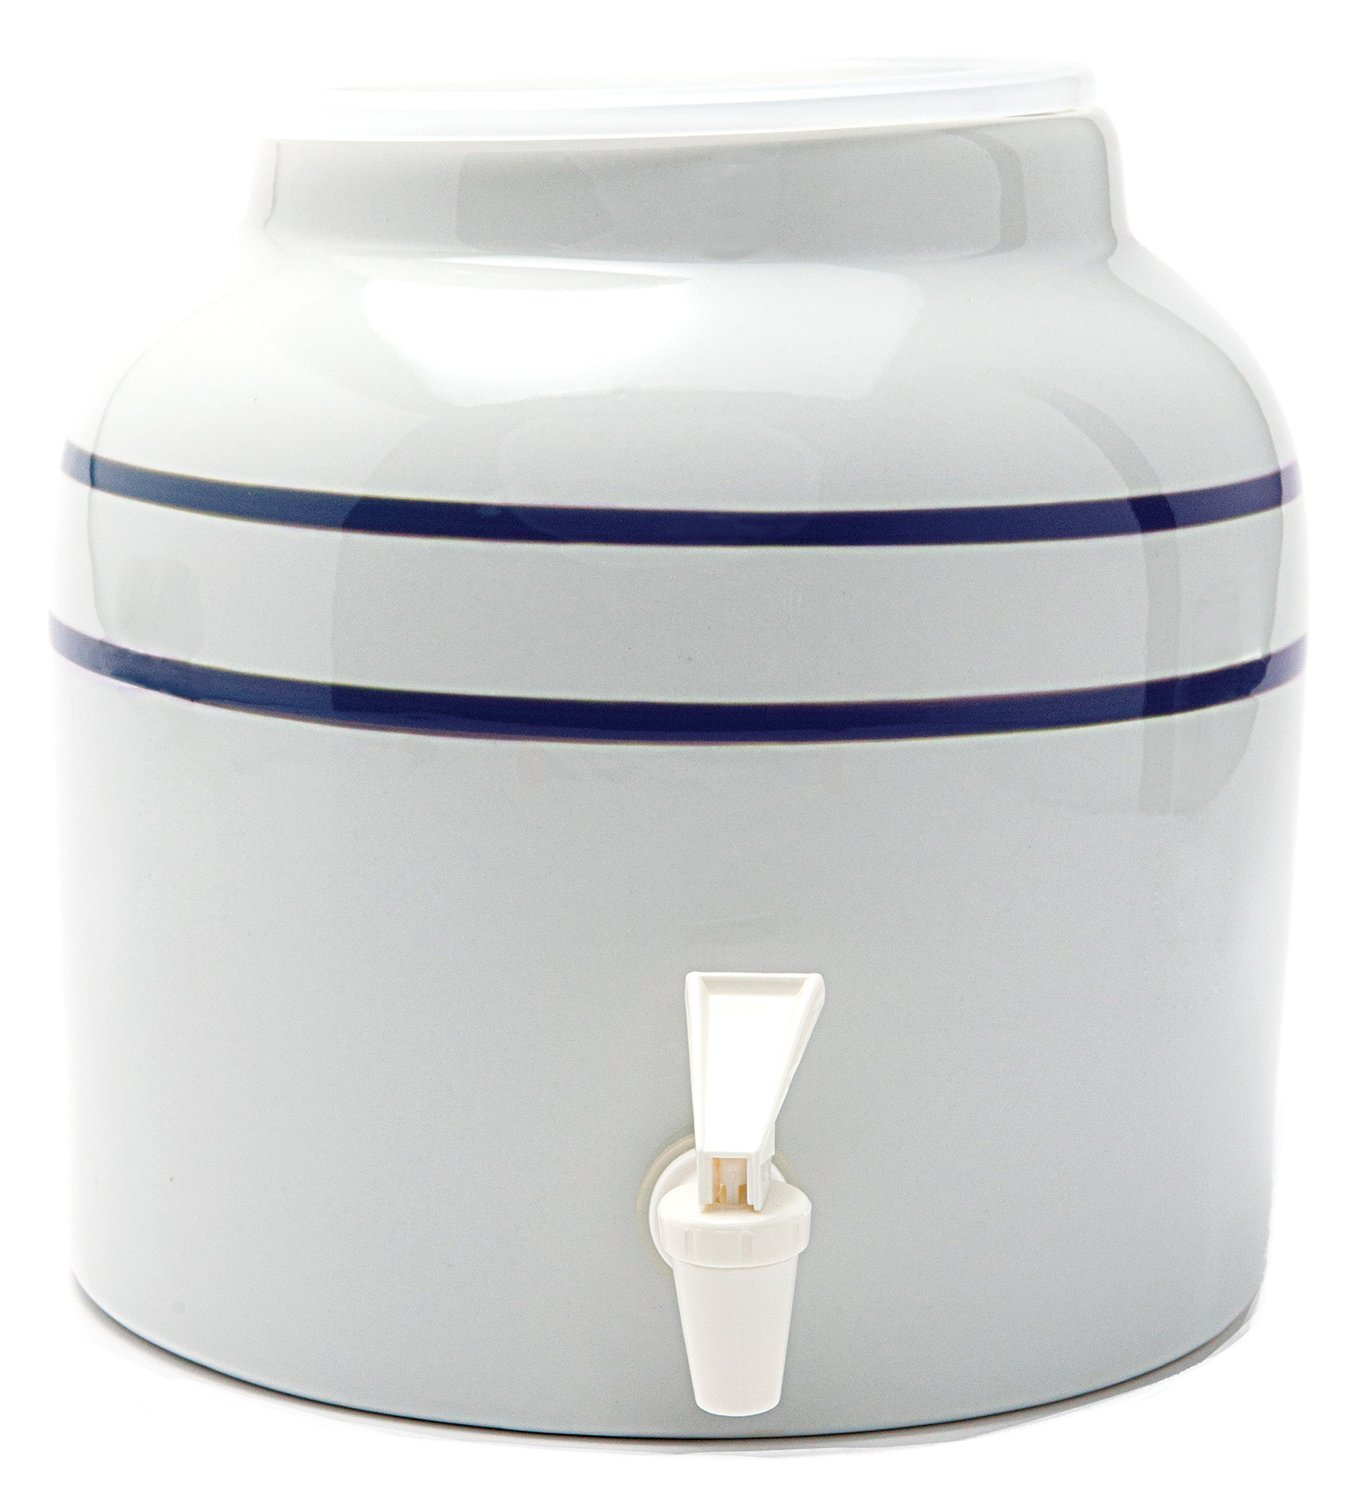 Goldwell Designs Double Stripes Water Dispenser Crock in Blue (4)